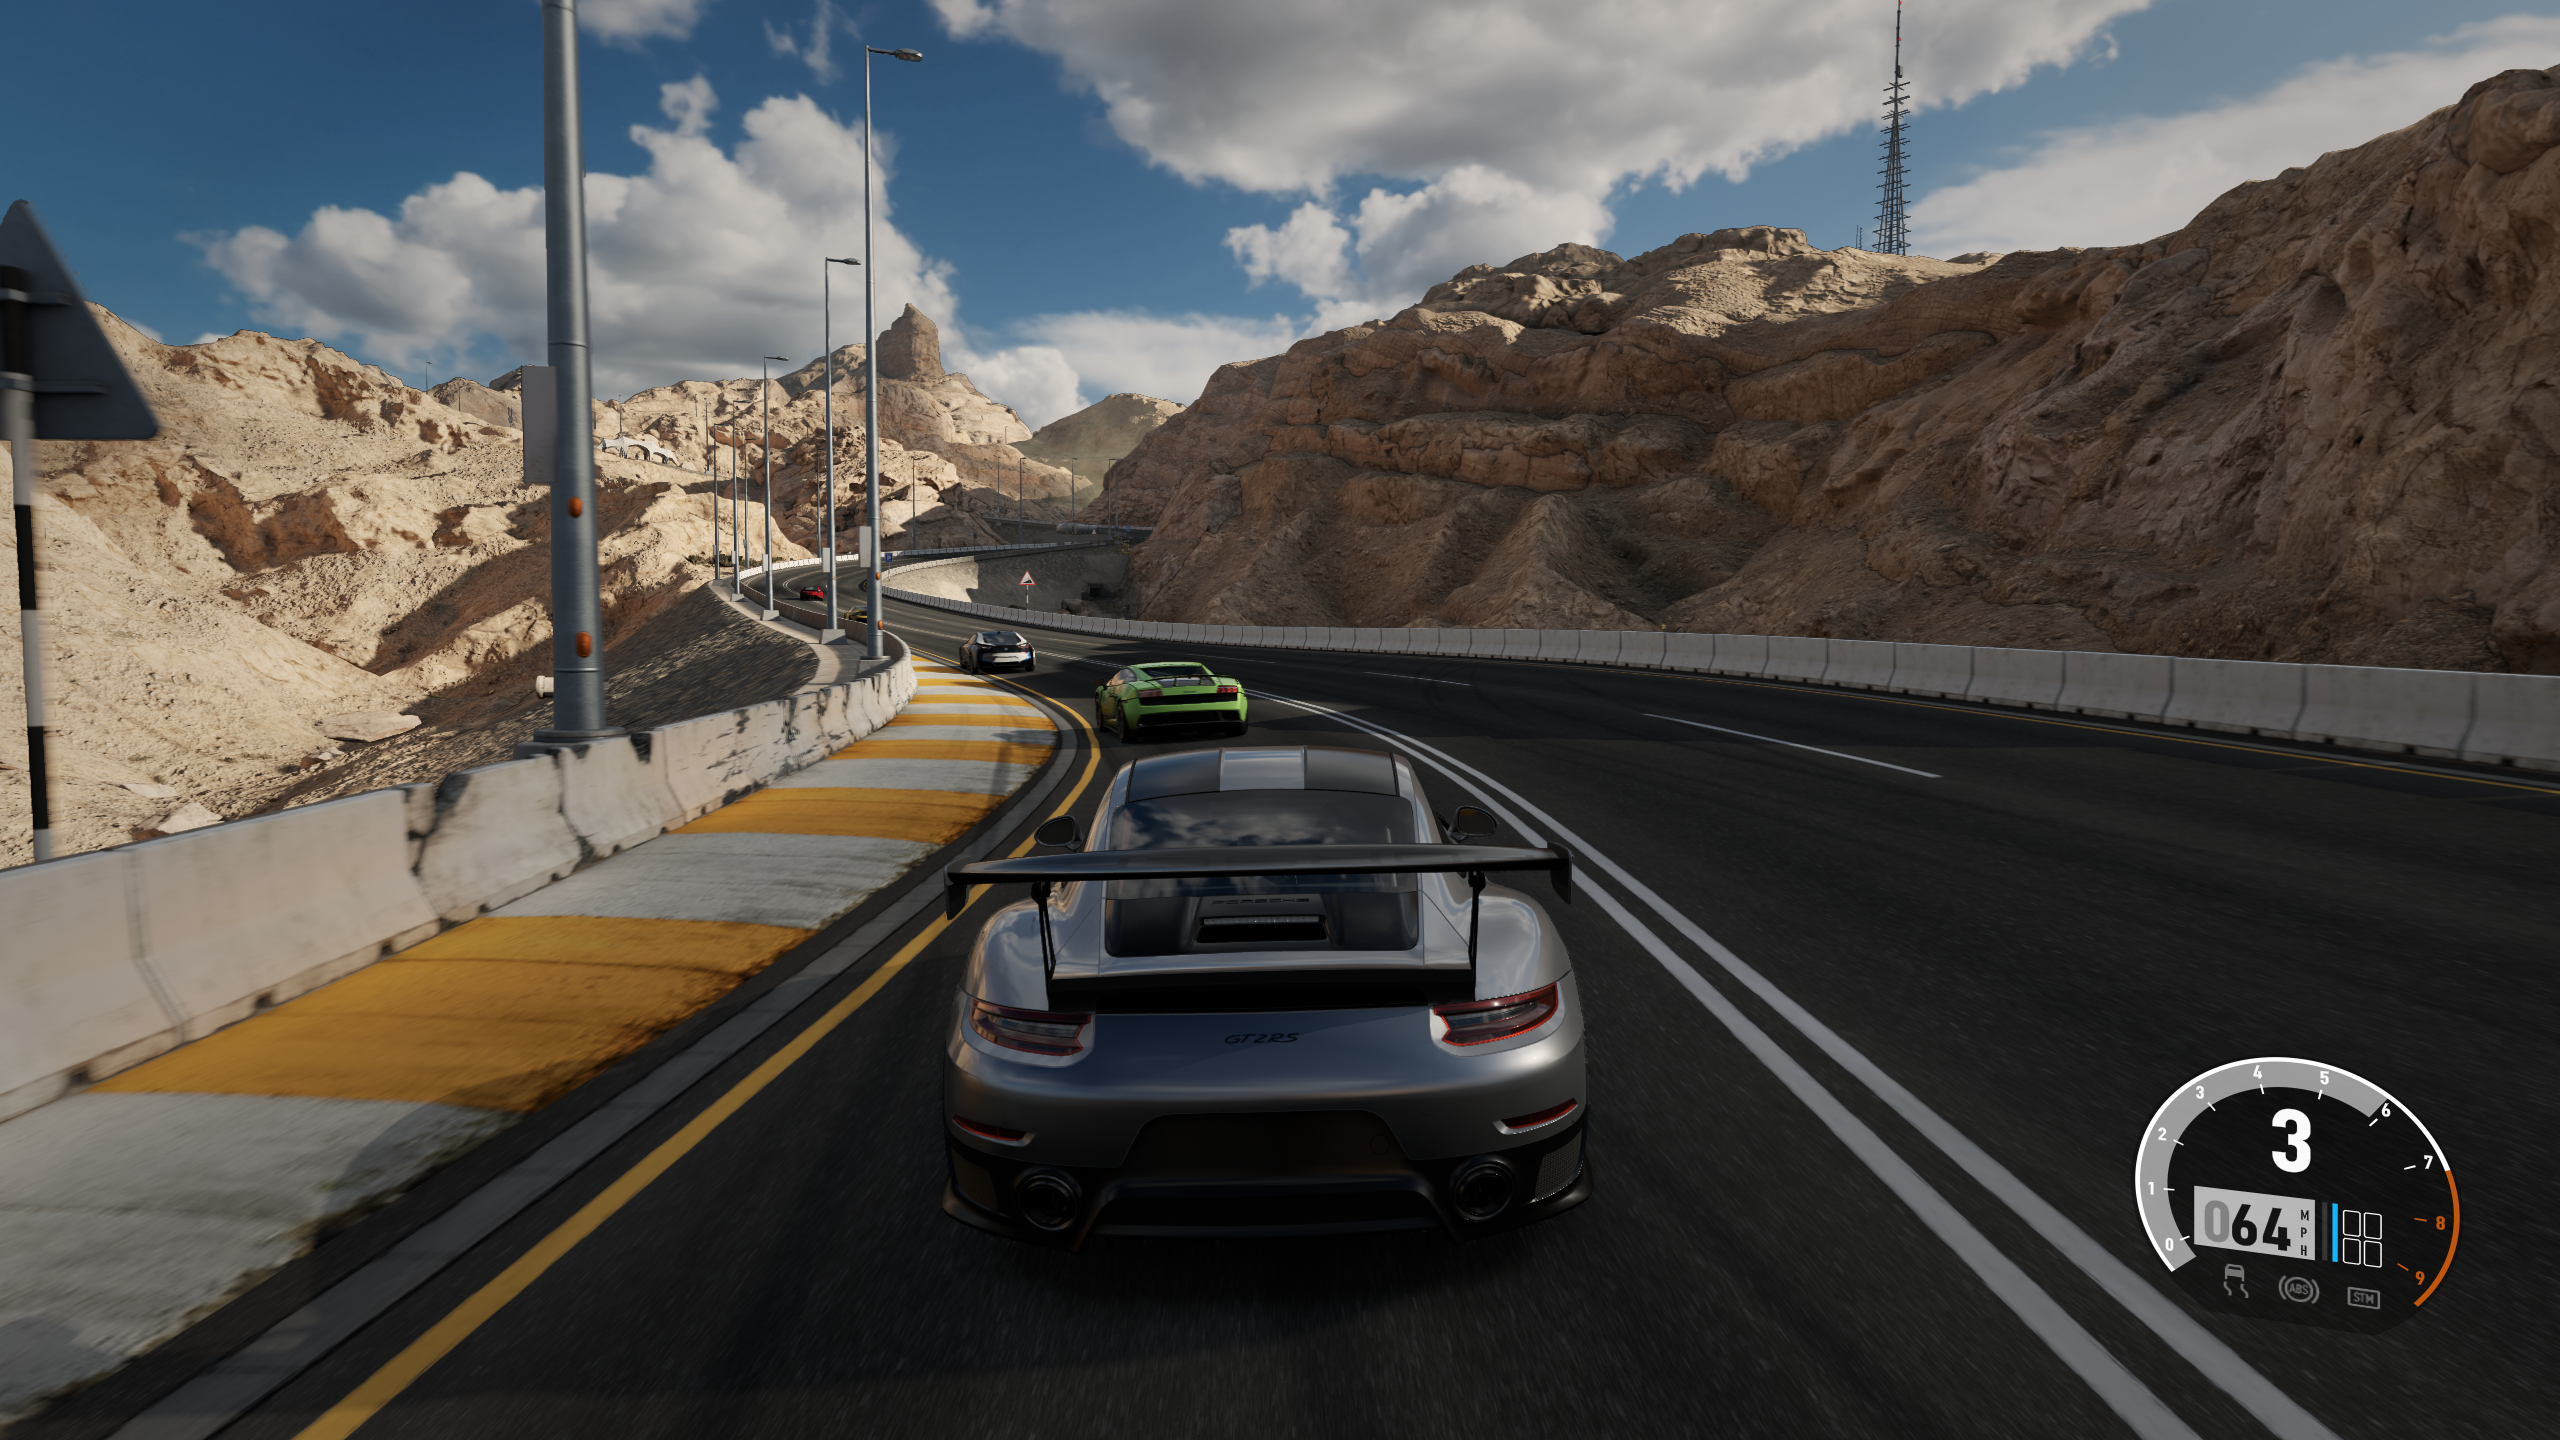 Forza Motorsport 7 demo is now live for Xbox One and W10